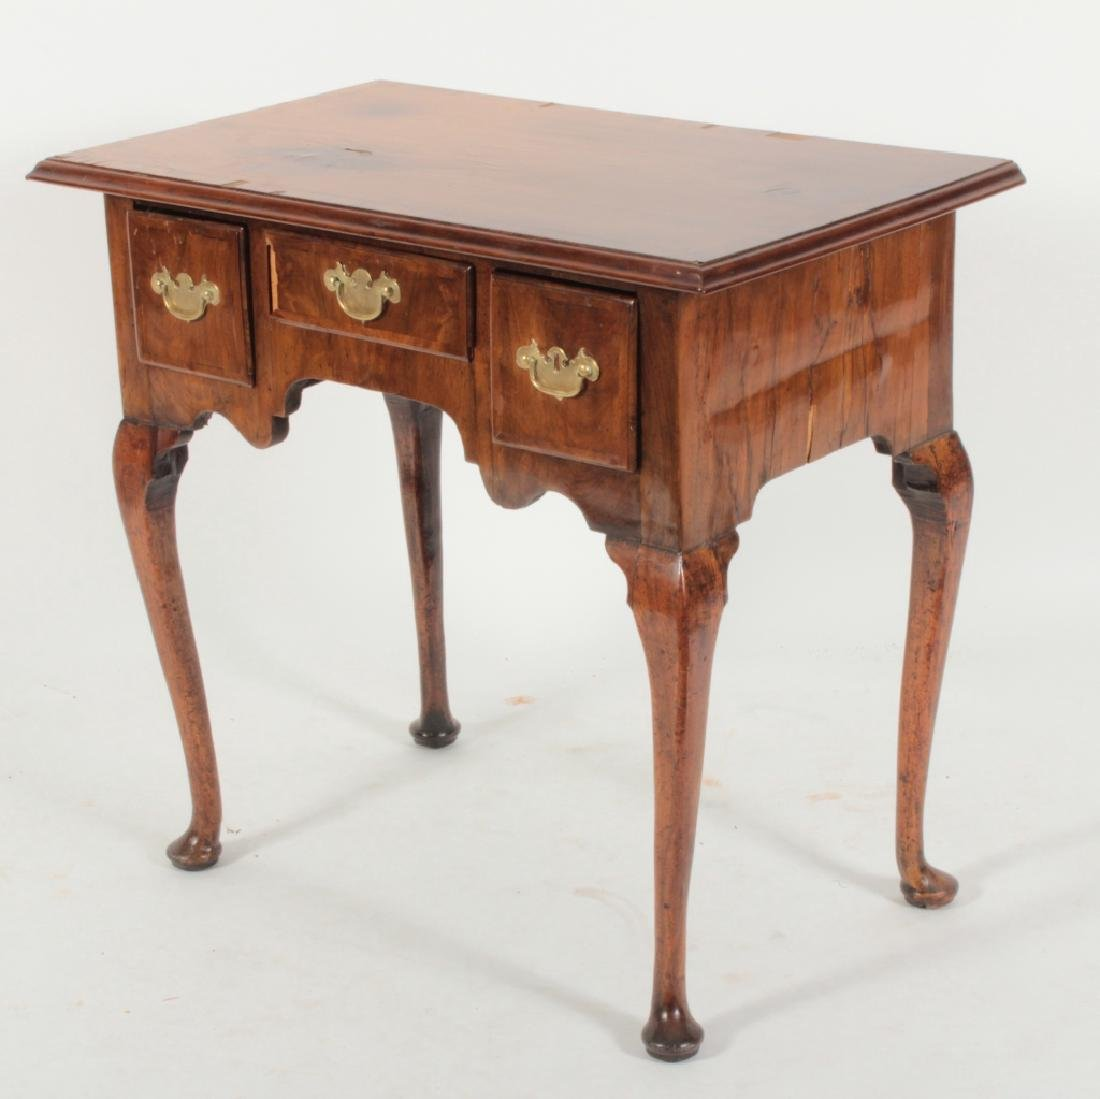 George II Walnut Dressing Table, 18th c.